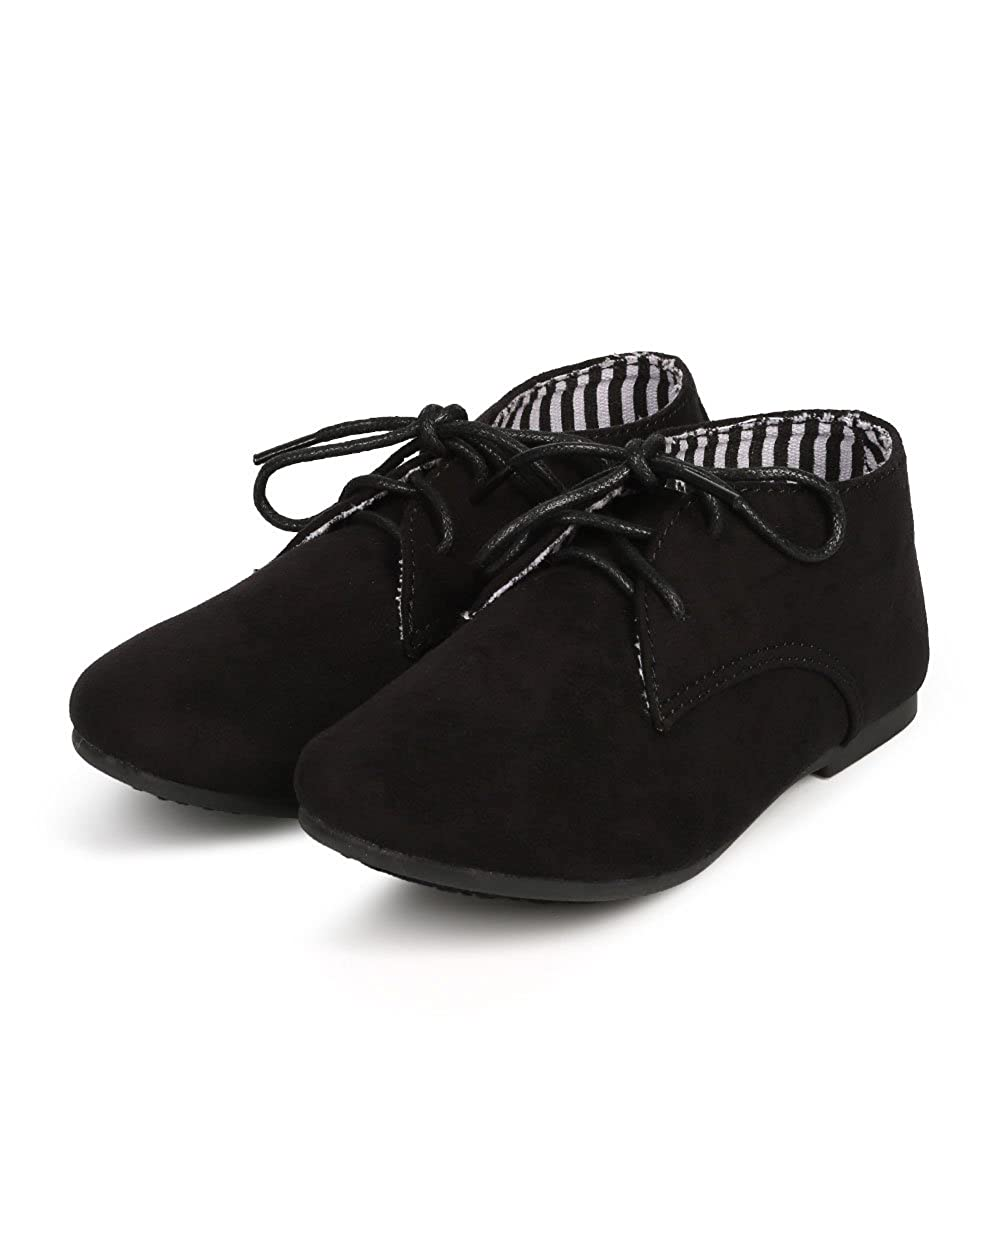 Toddler//Little Girl//Big Girl Black Suede Round Toe Lace Up Classic Ankle Oxford Flat DG66 Size: Little Kid 11